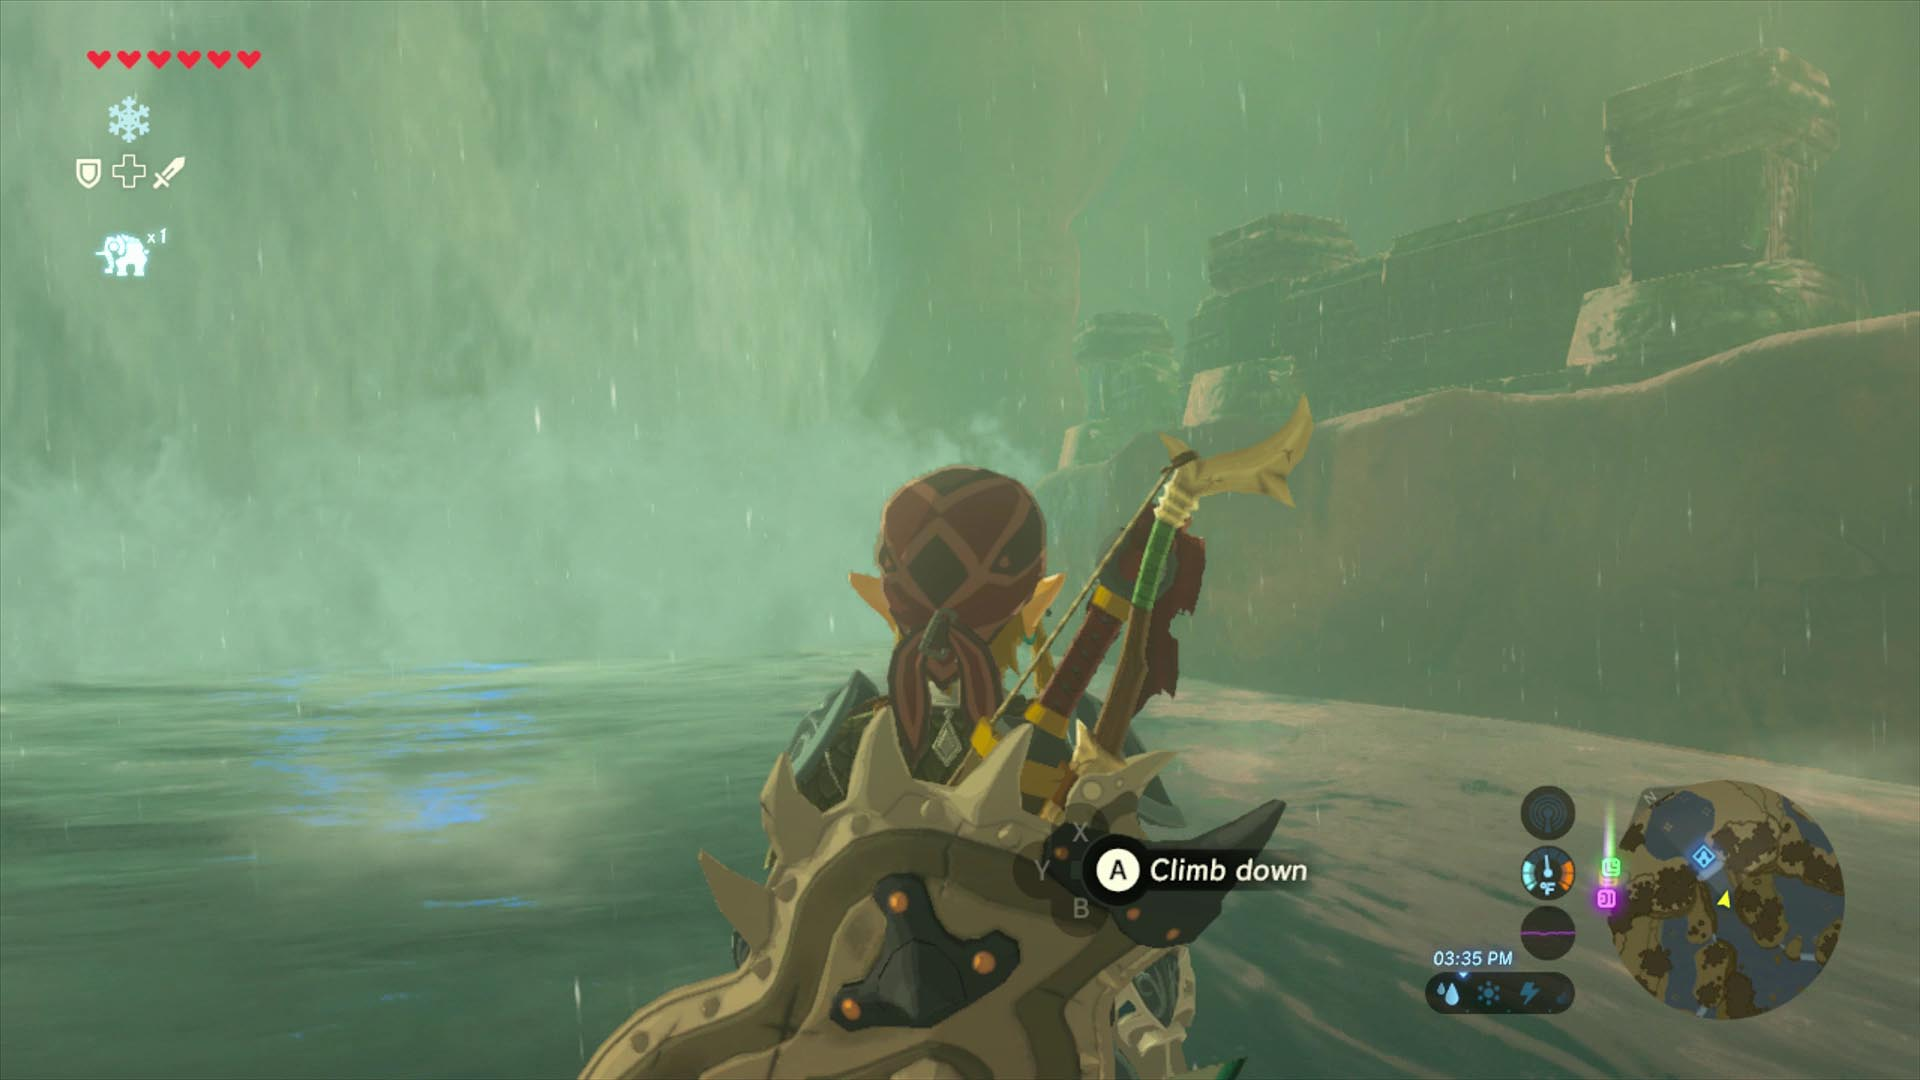 Zelda Breath of the Wild guide: Shoda Sah shrine walkthrough and